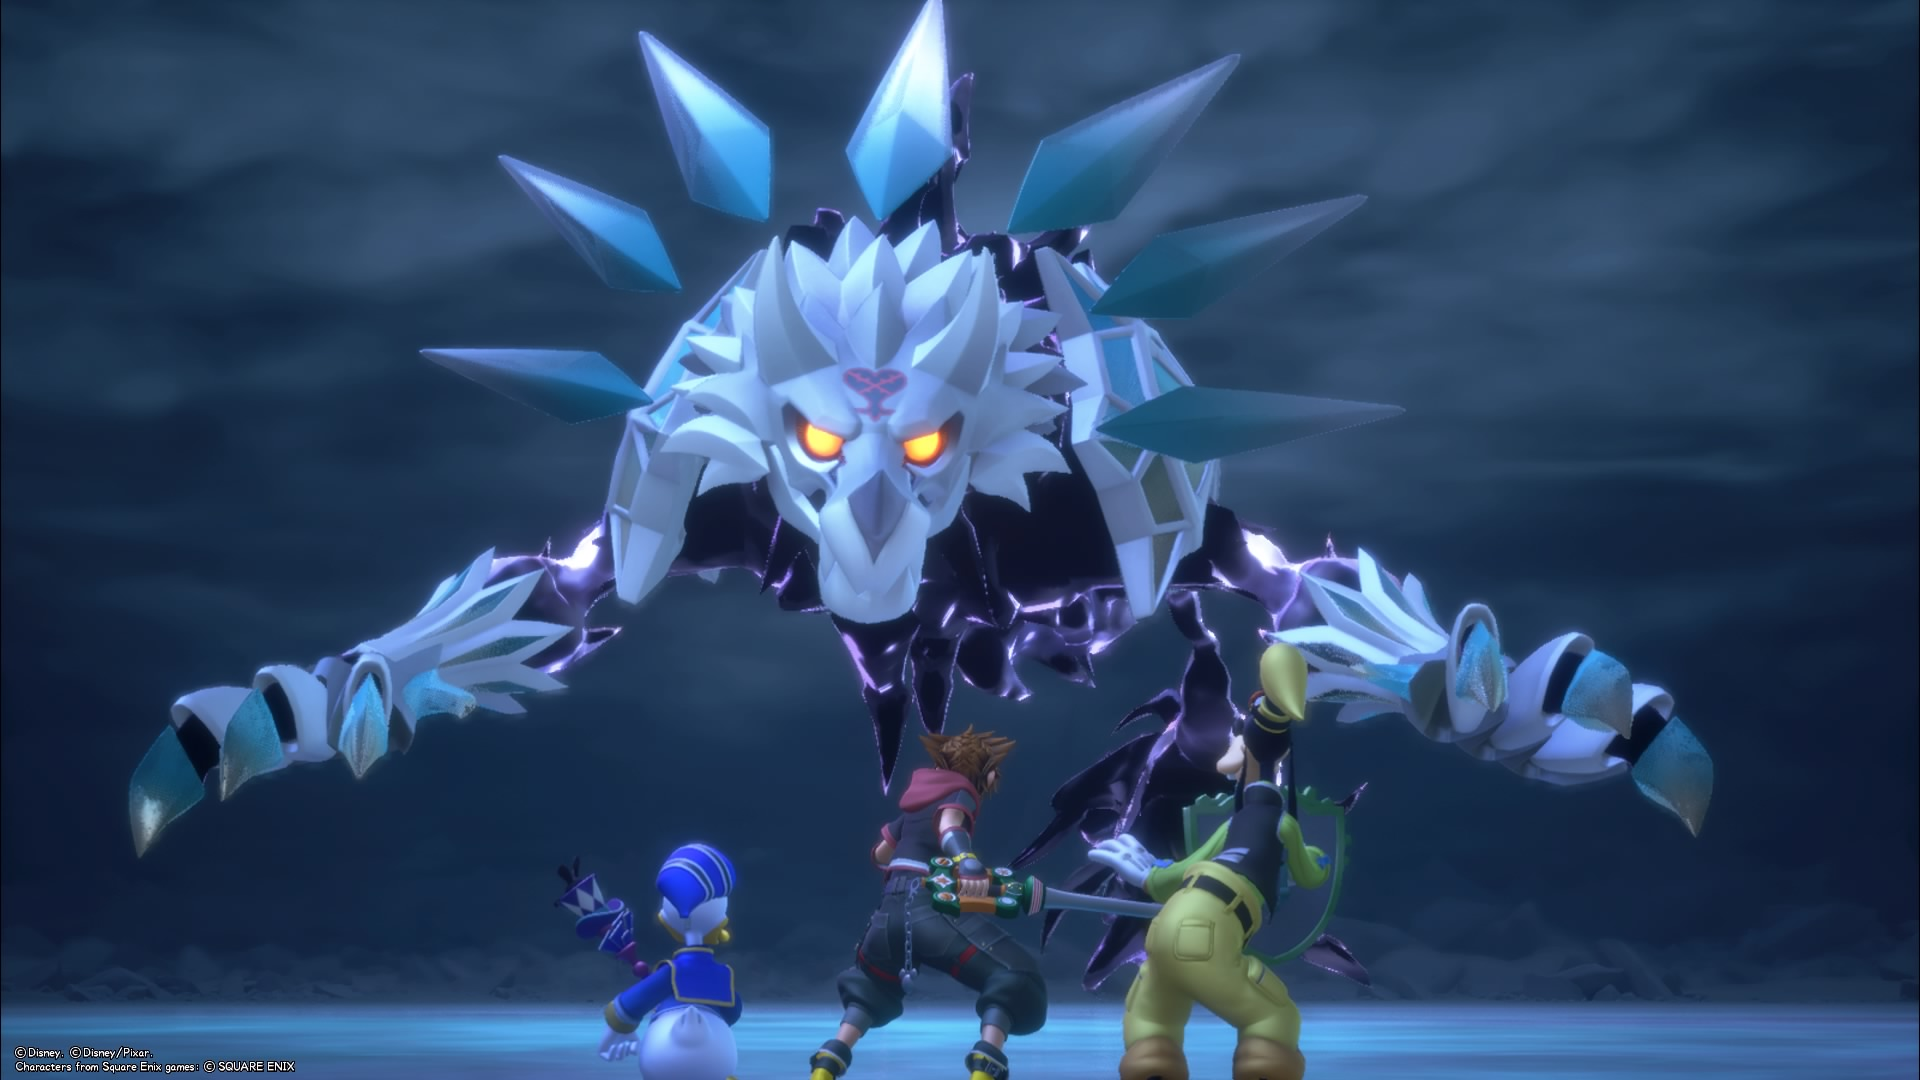 Game Review : Why I Didn't Like Kingdom Hearts 3 - Blogging with Dragons